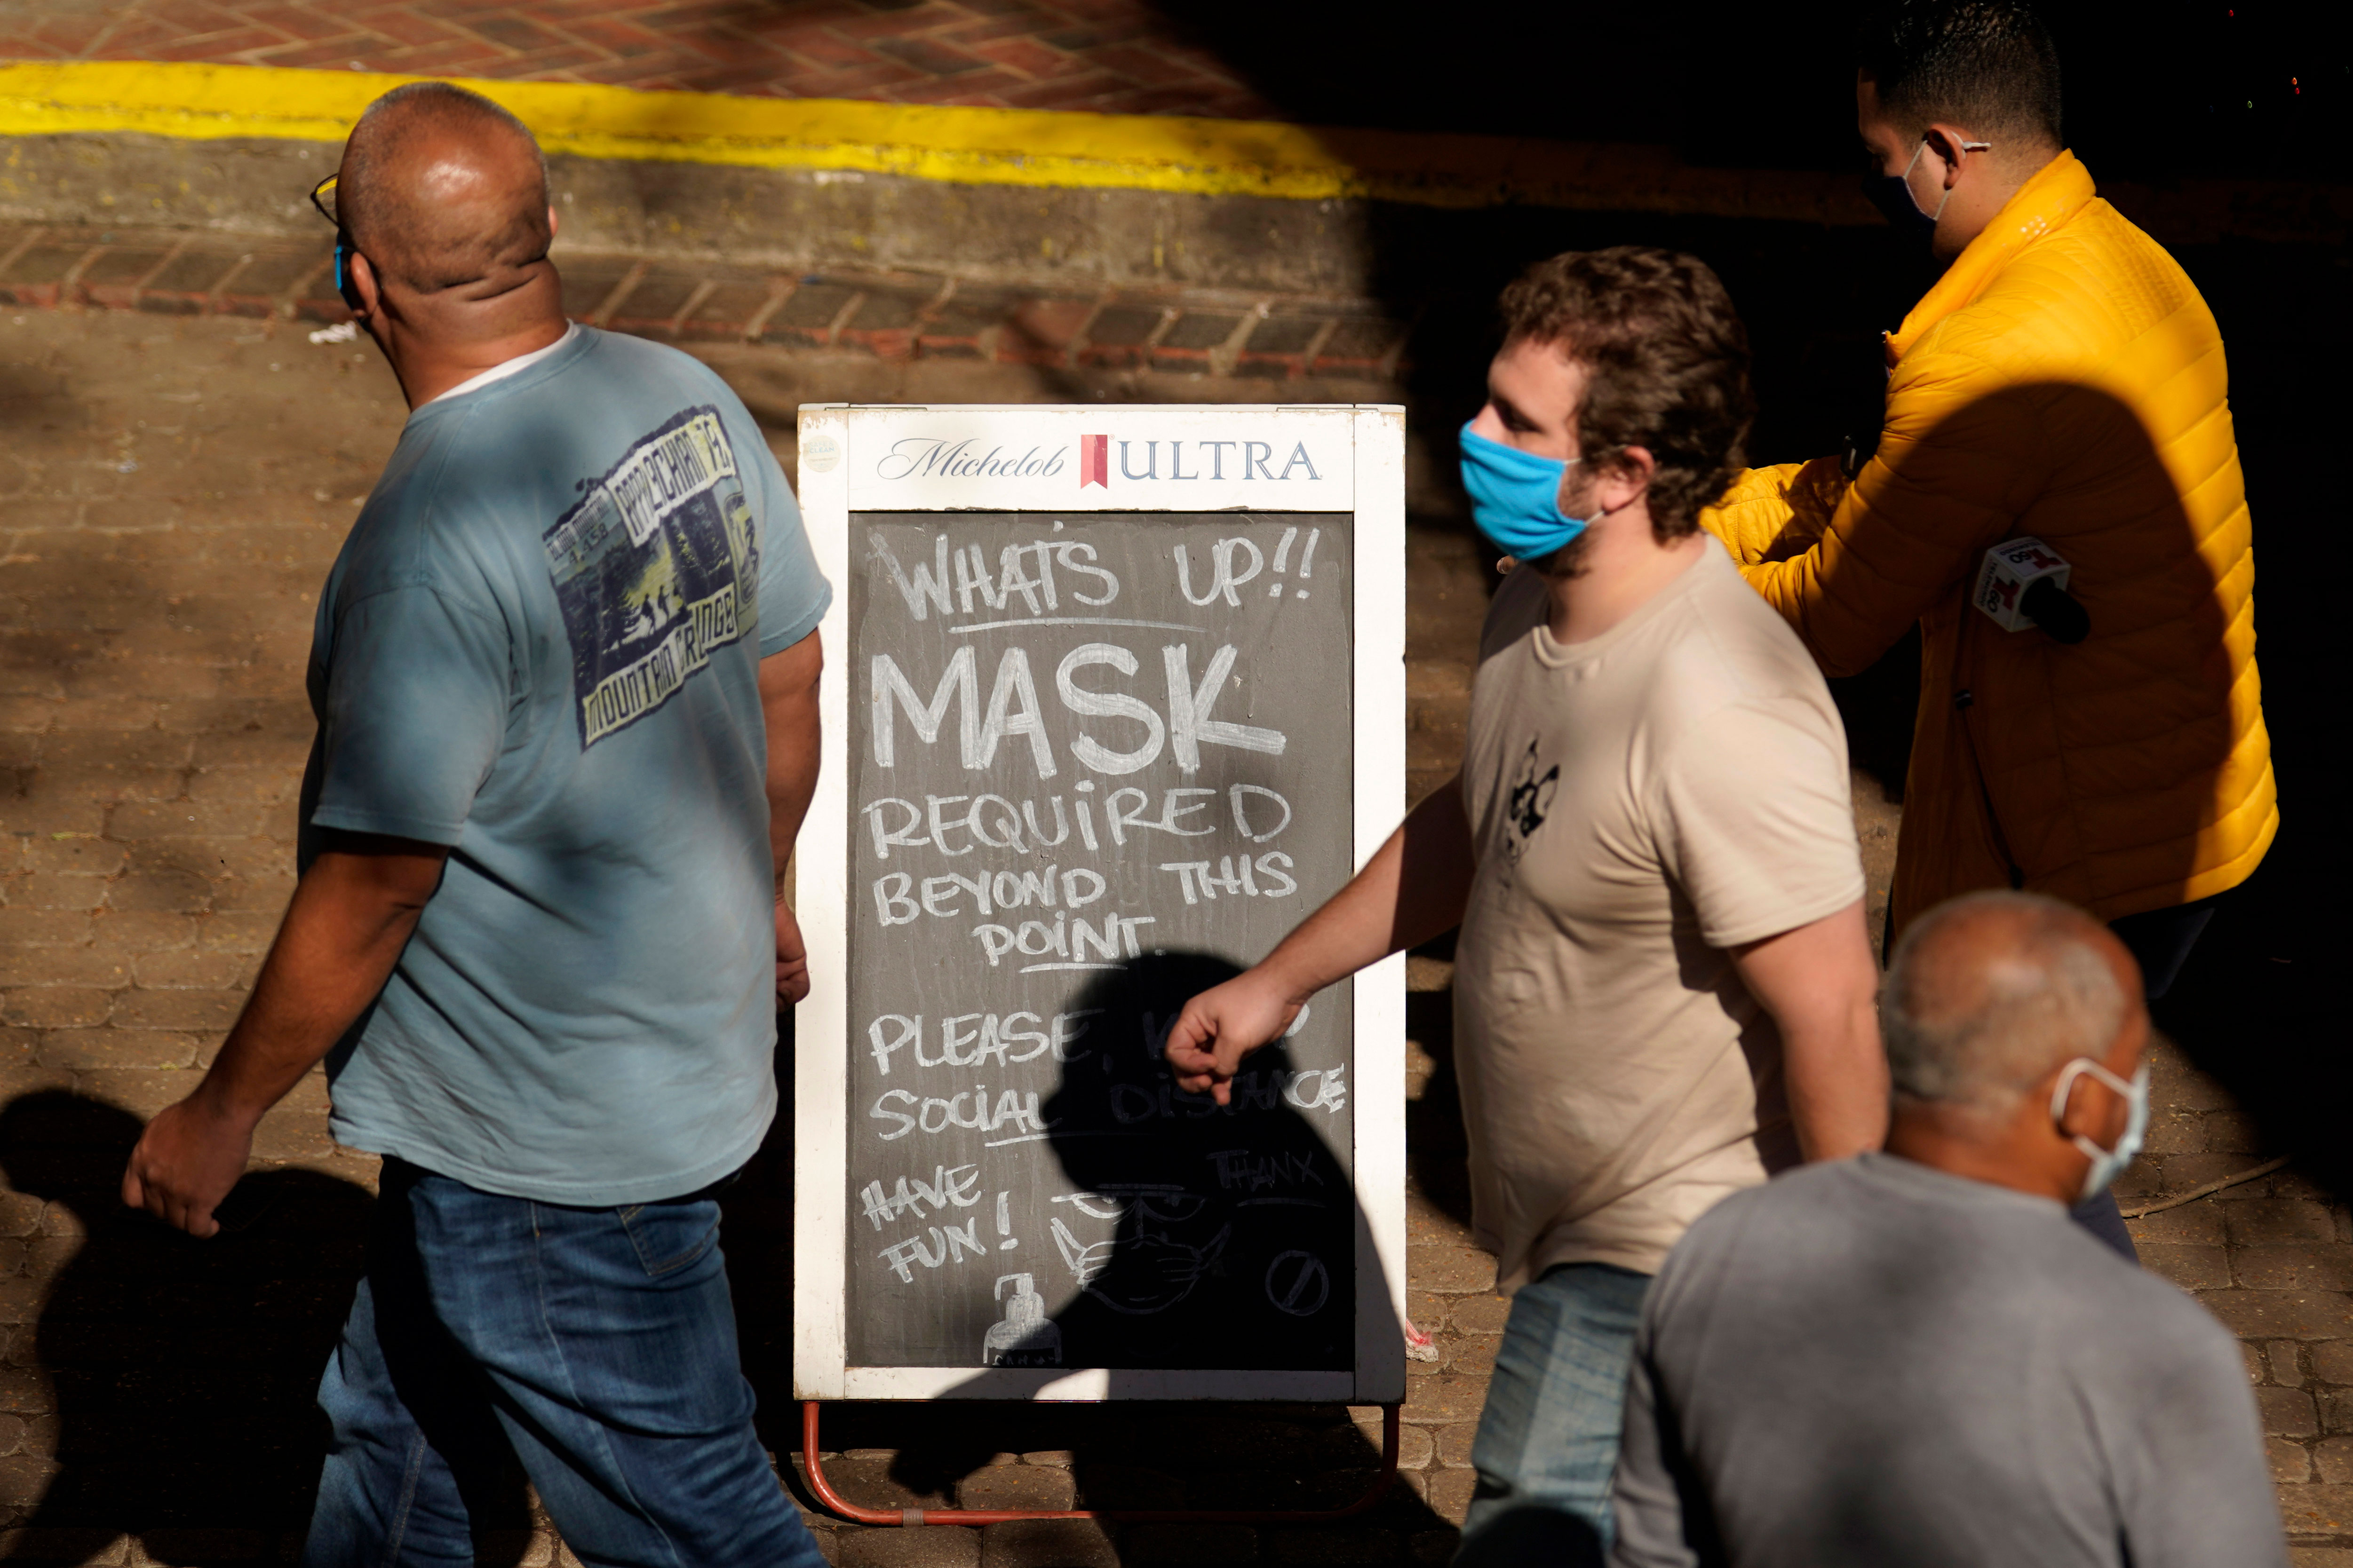 'It's too soon for it': Small business owners react to Texas dropping mask mandate